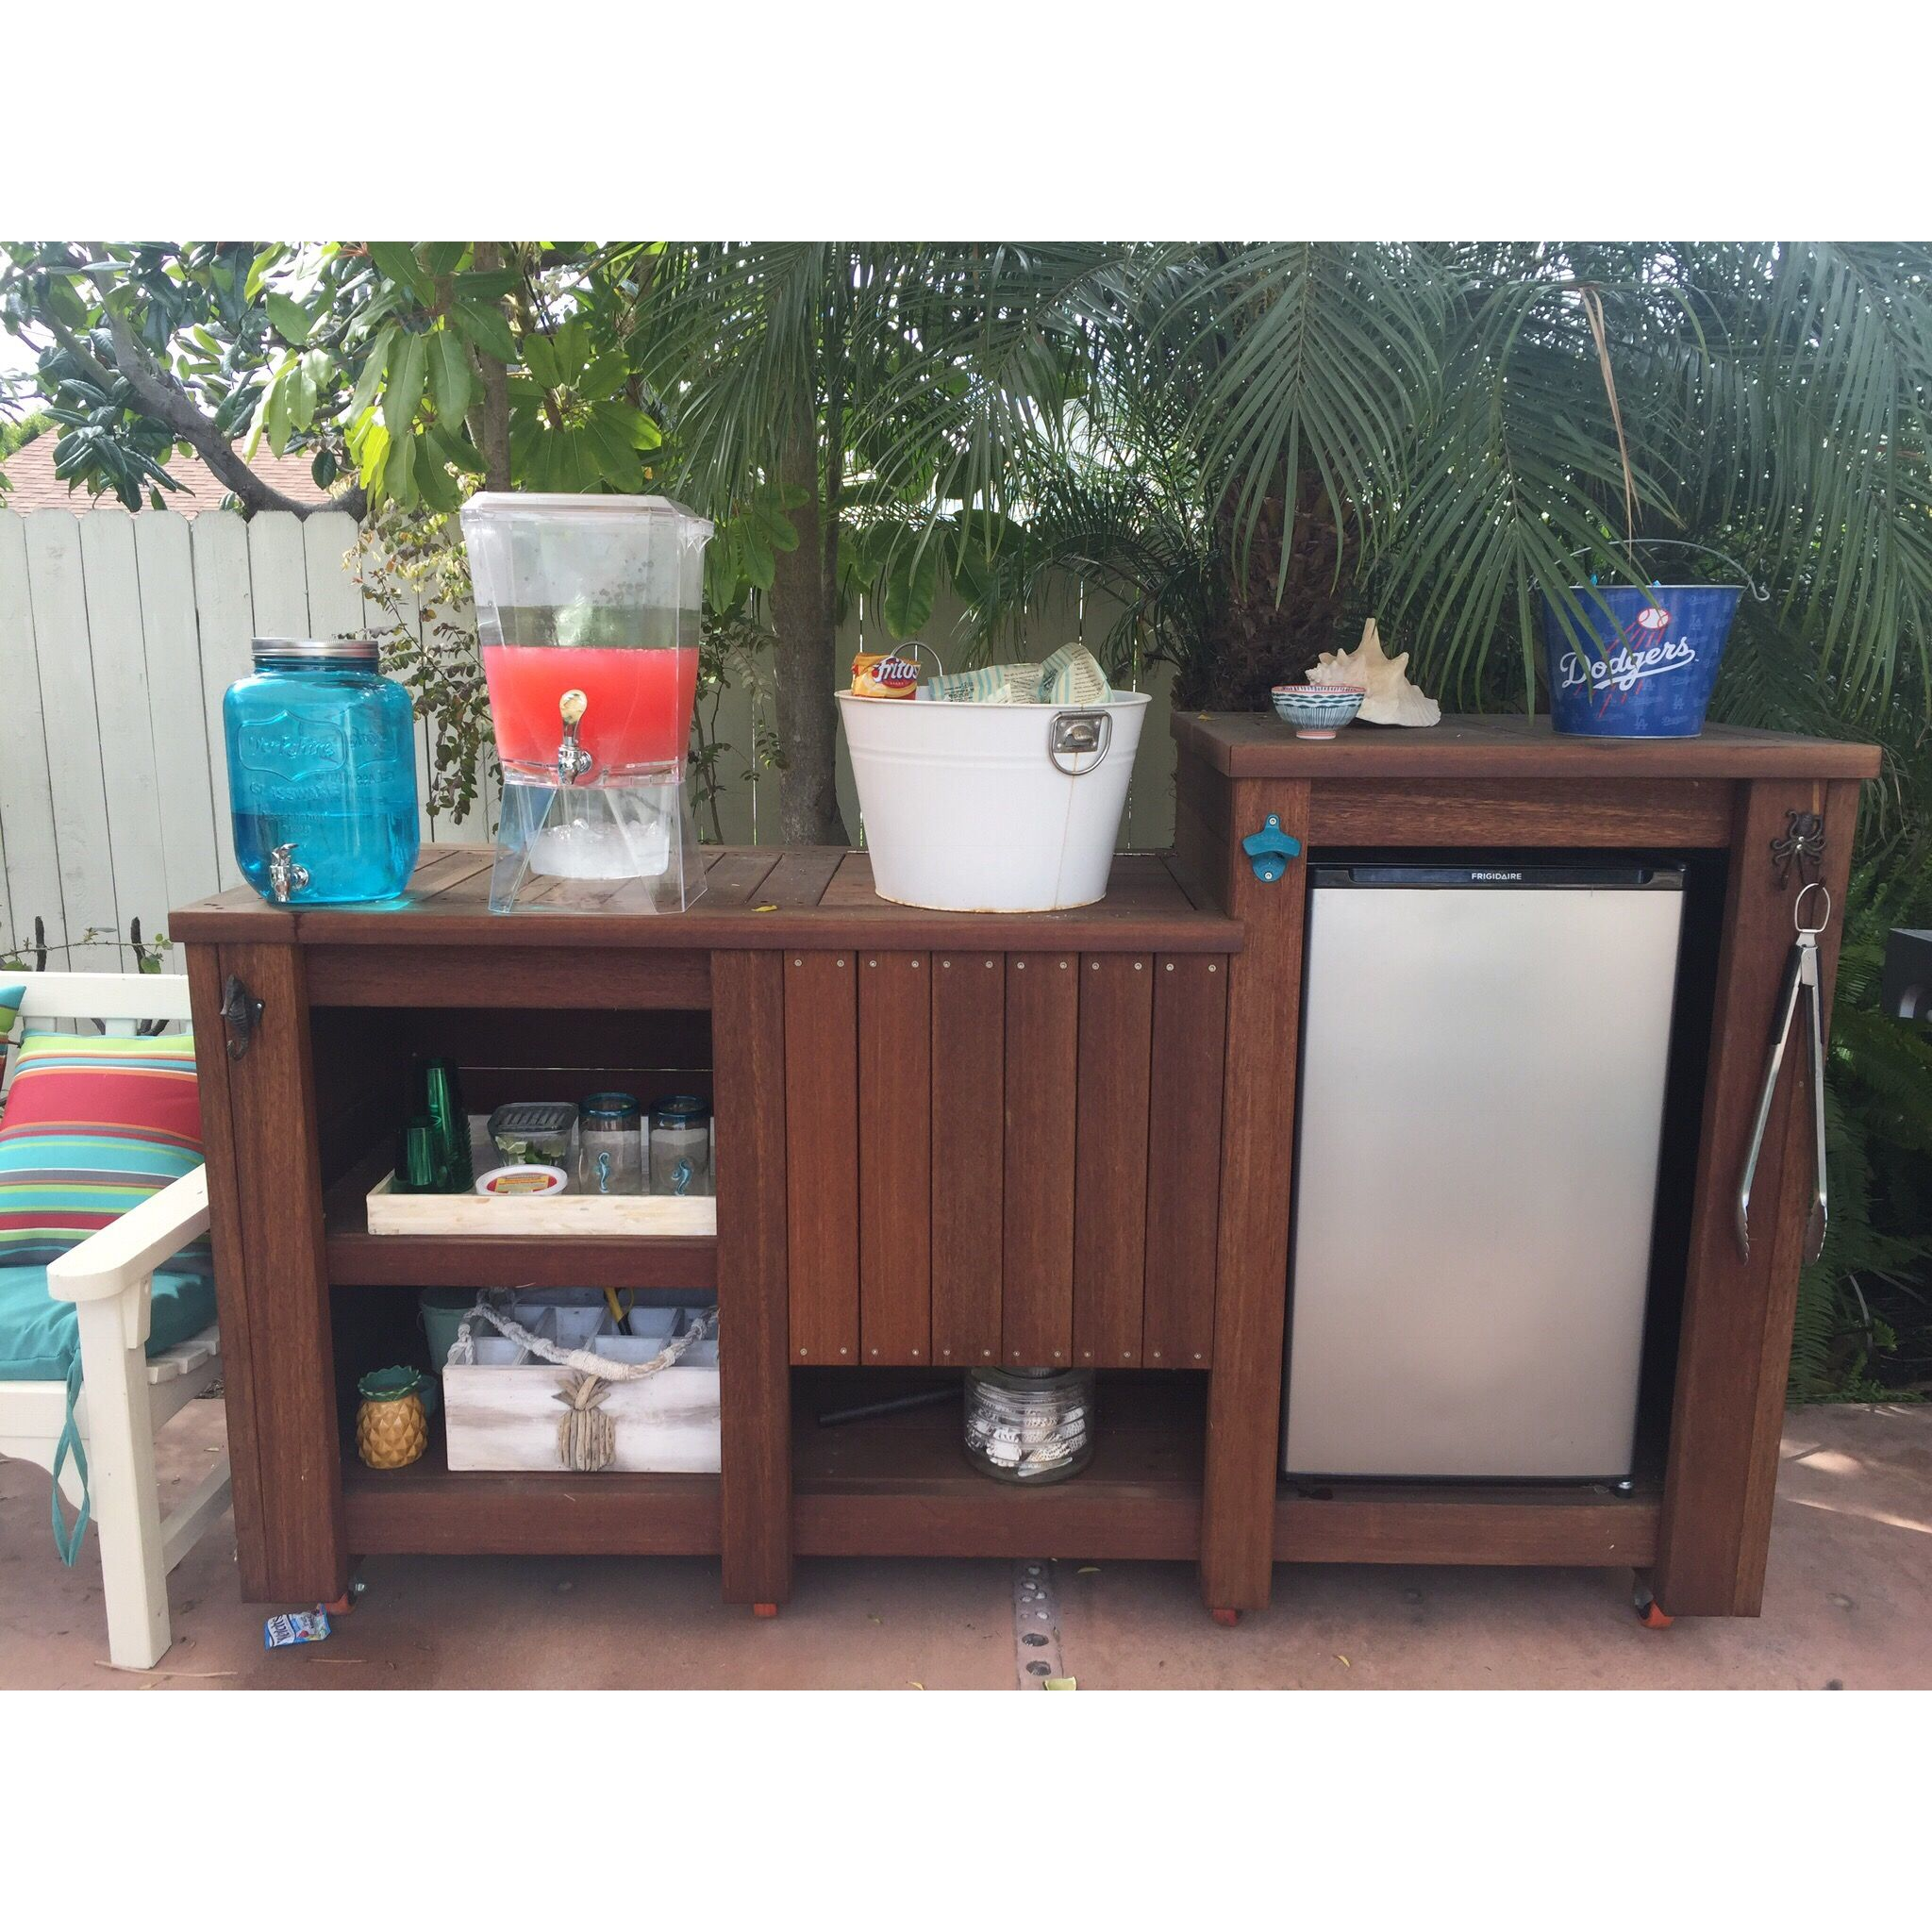 Outdoor Living Custom Tropical Wood Rolling Bar Cart With Mini Fridge And Built In Cooler Outdoorbar Ba Outdoor Fridge Outdoor Kitchen Bars Diy Outdoor Bar